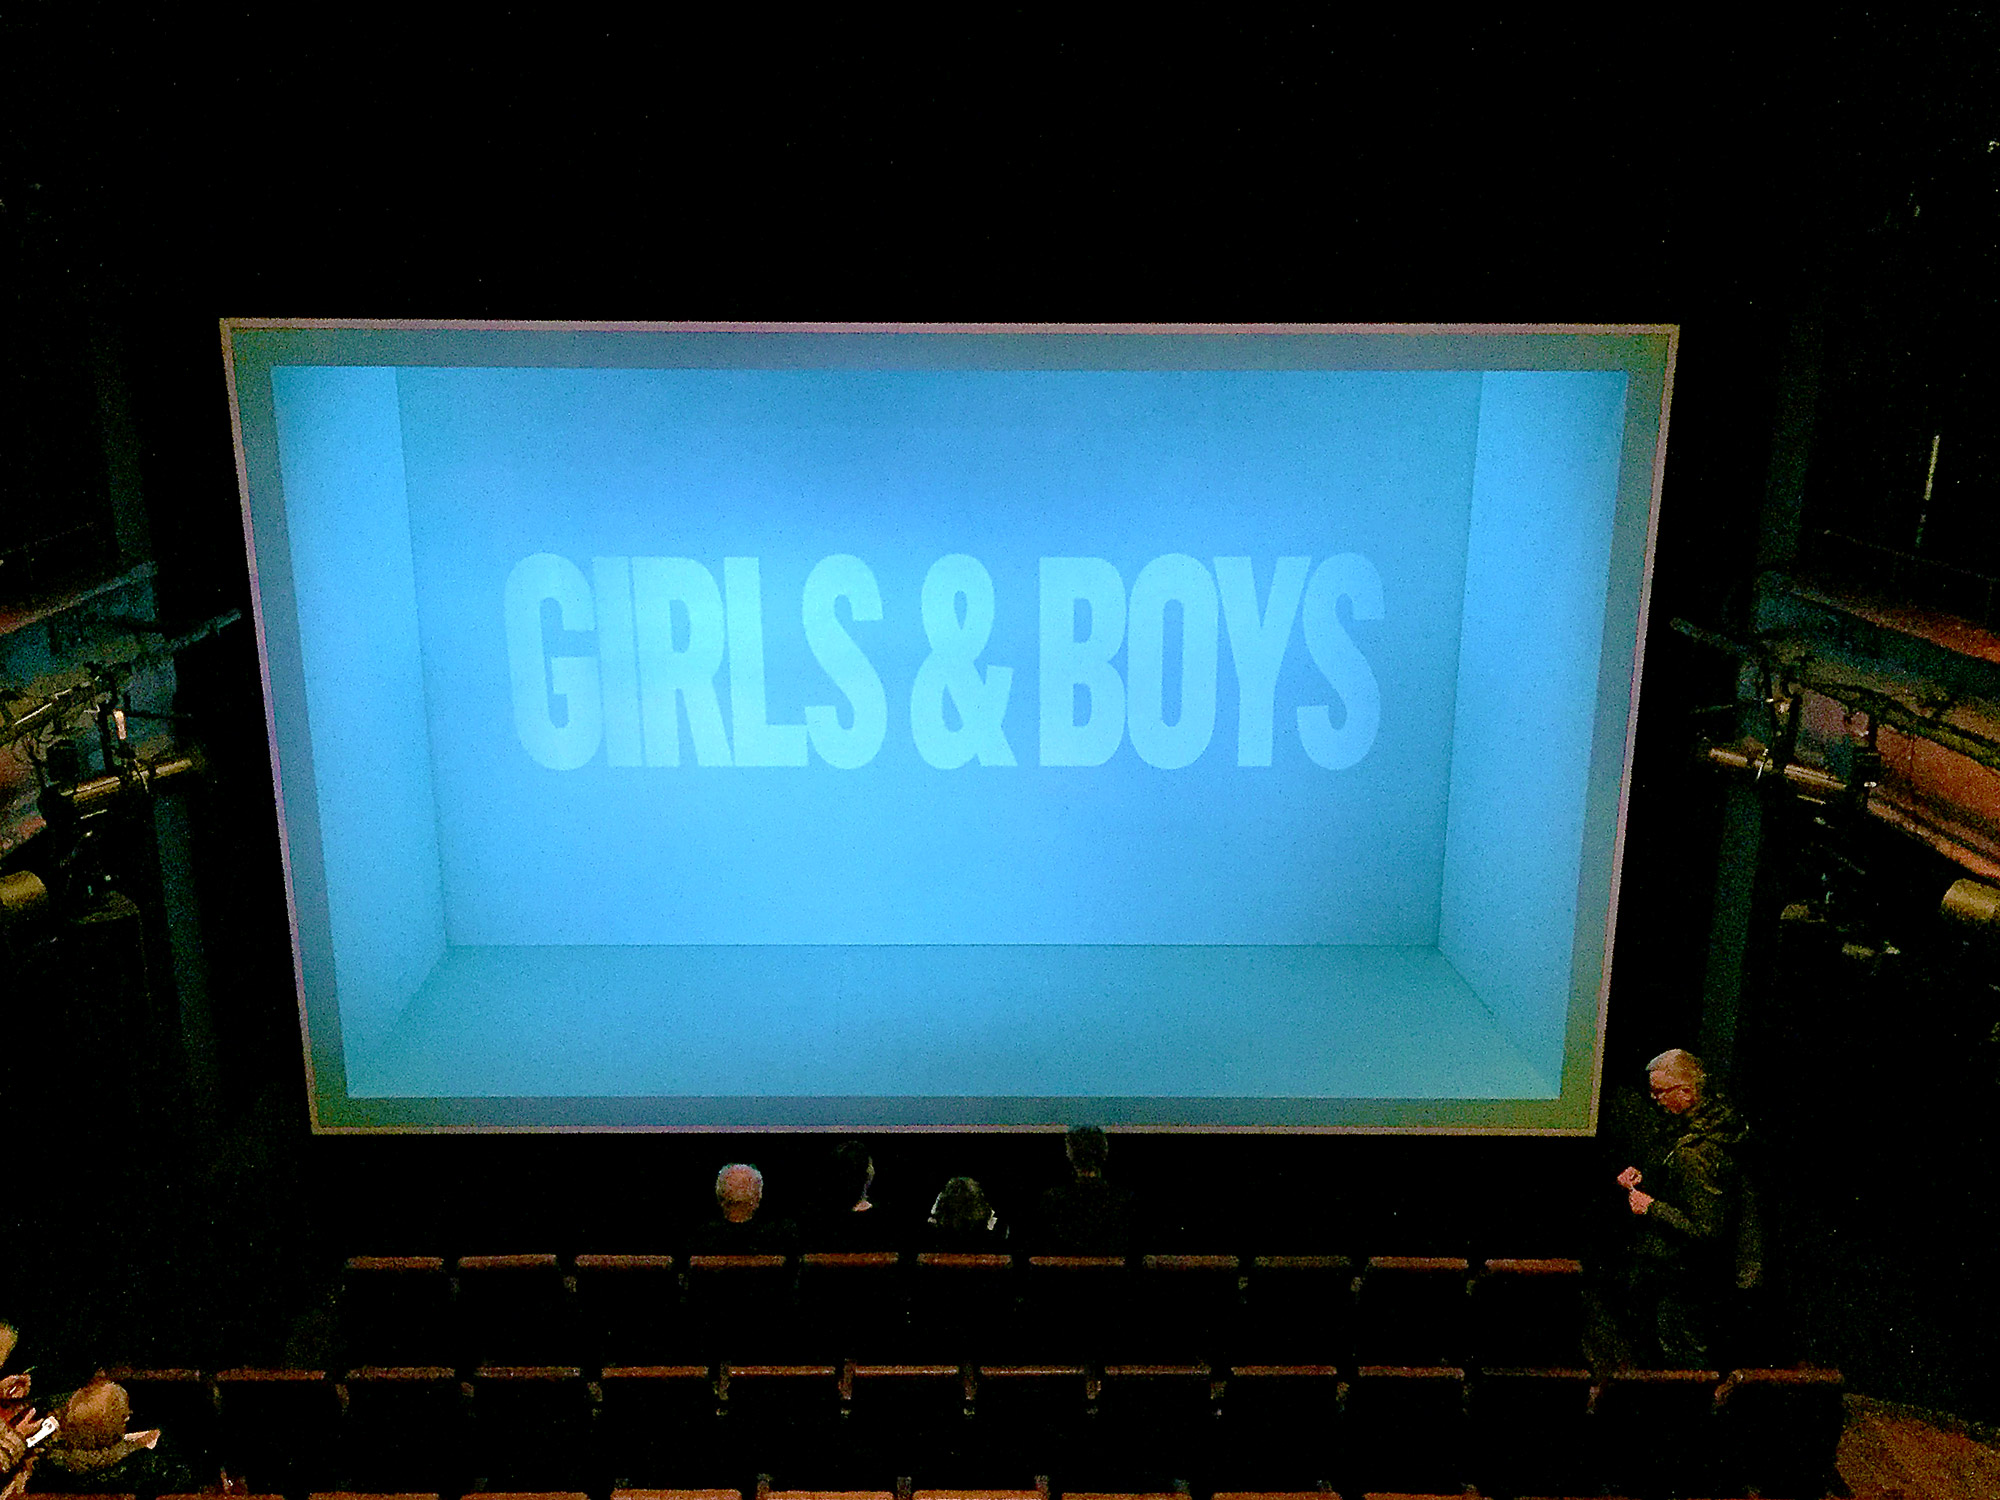 In front of rows of theatre seats, a green-lit box is open on one side towards us. At the rear of the box are the words Girls & Boys.